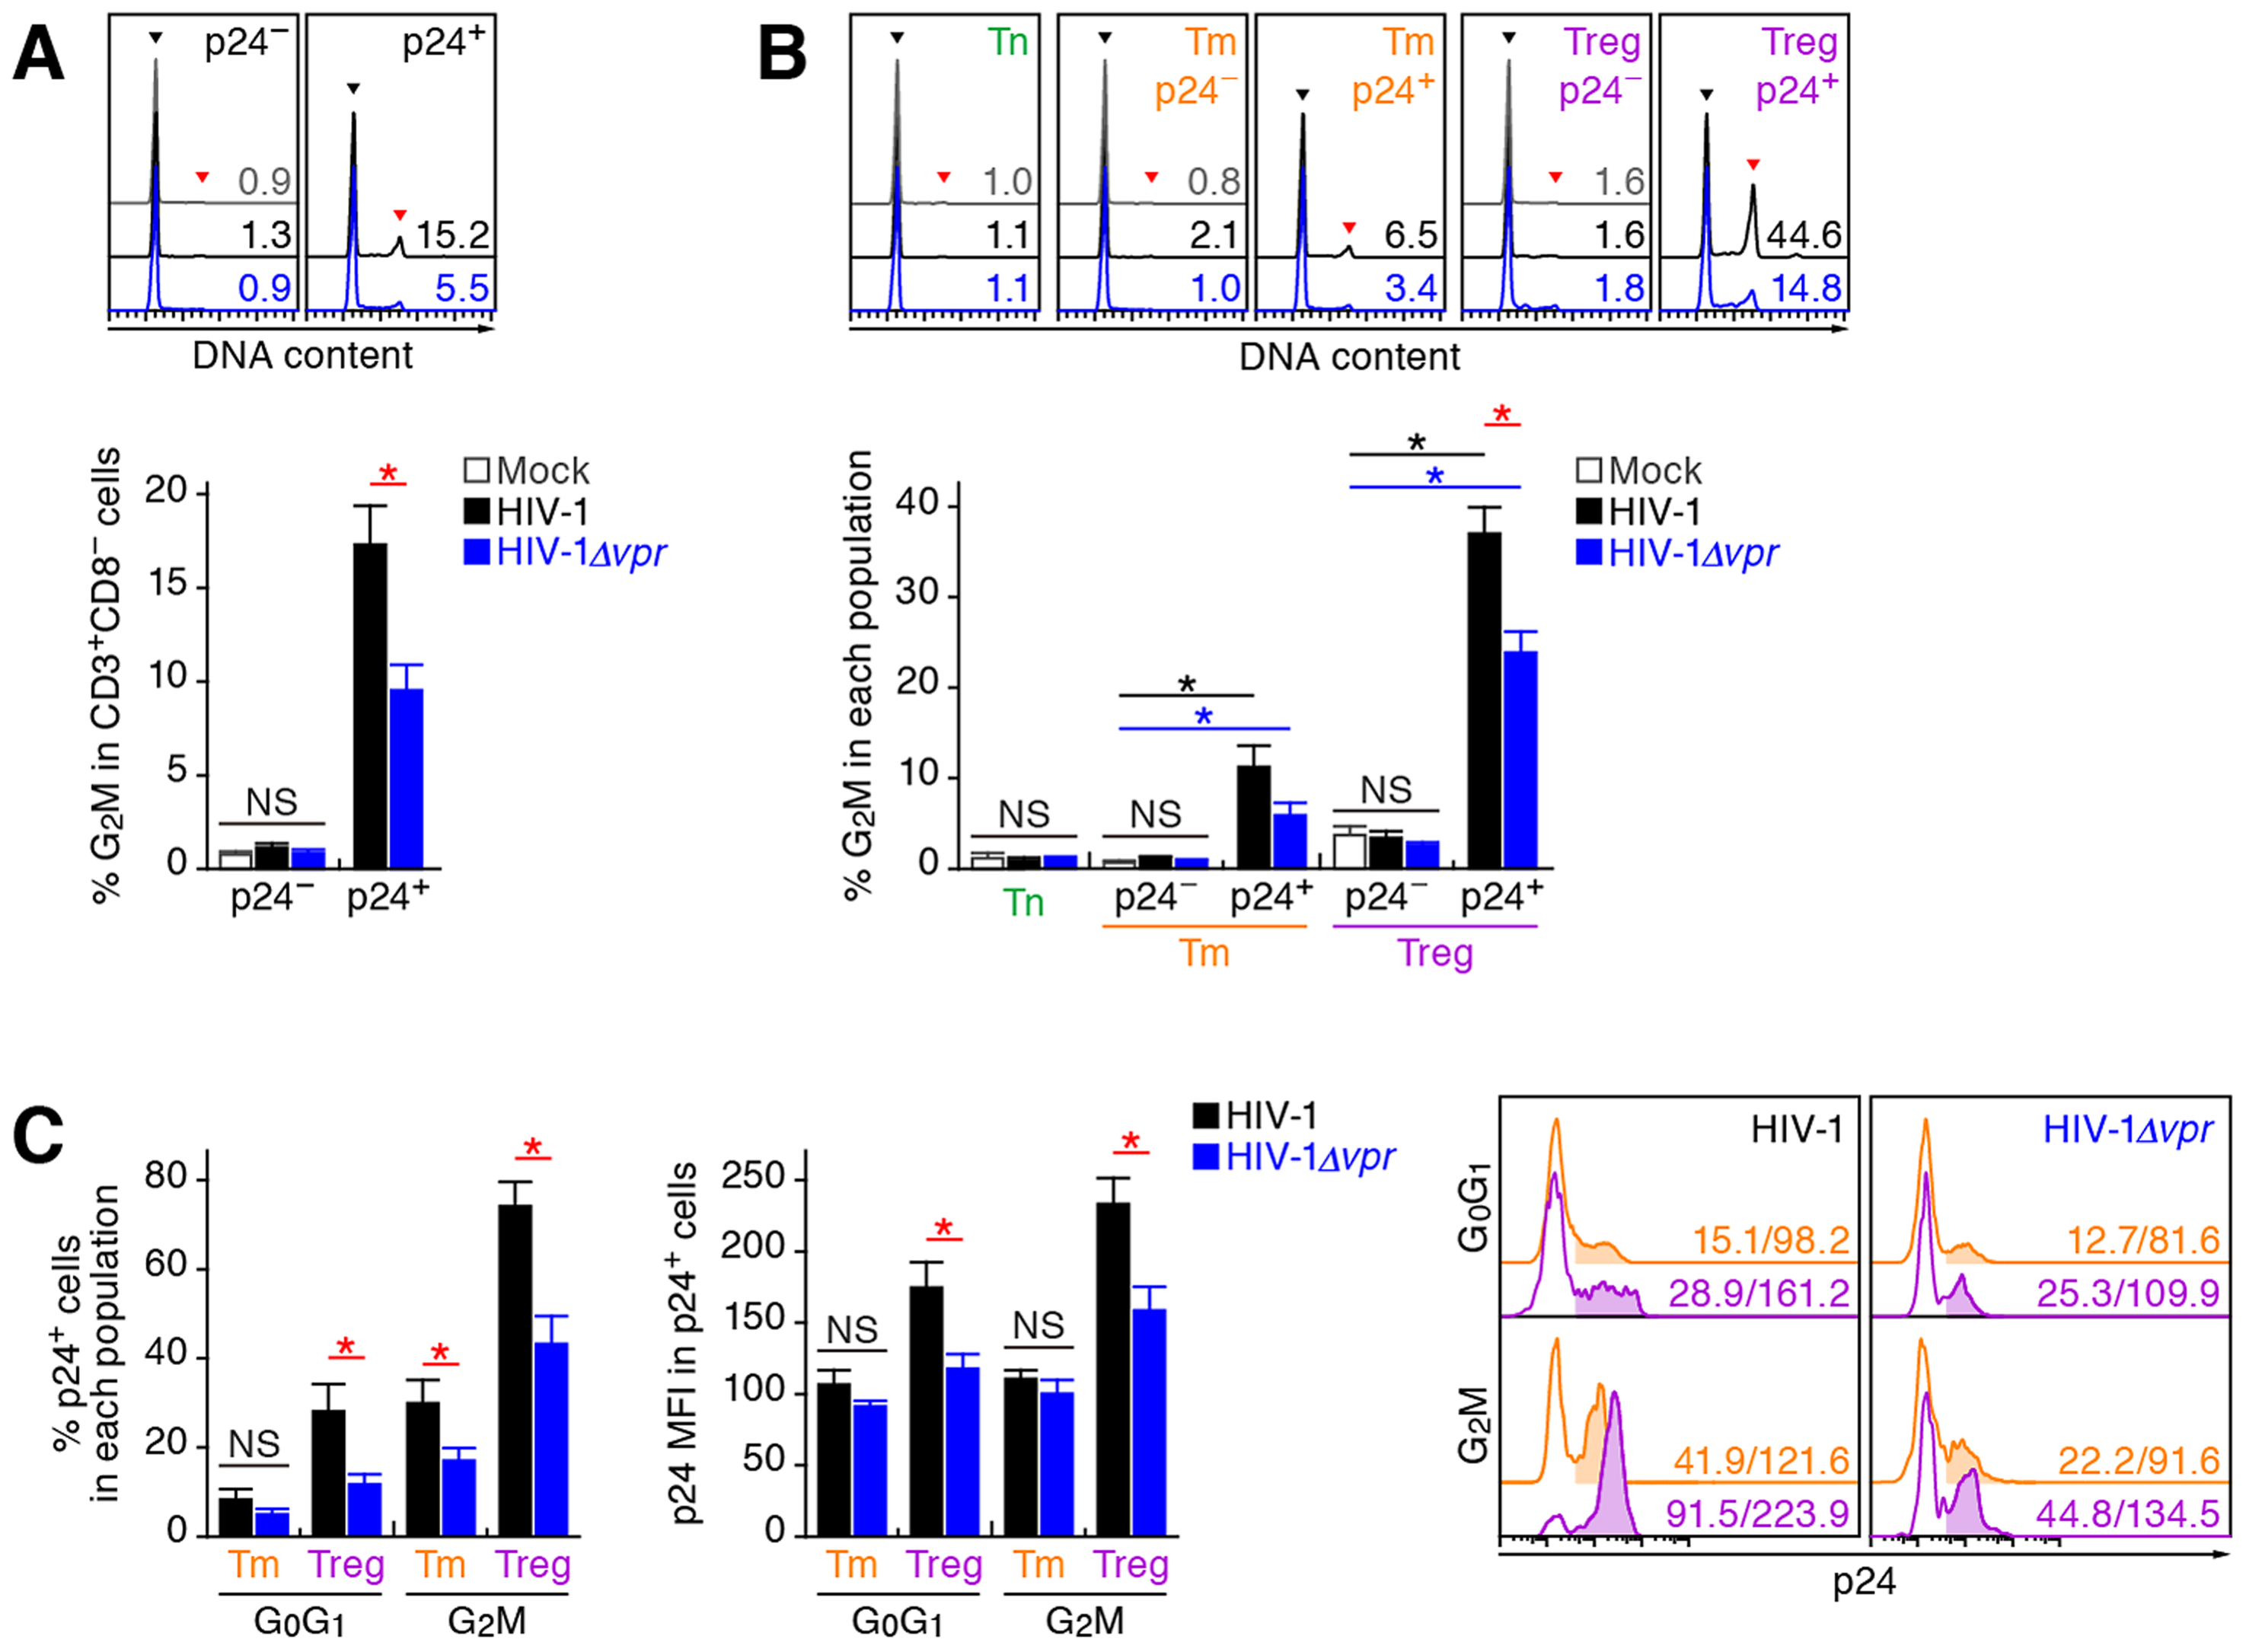 Effect of Vpr on G<sub>2</sub> cell cycle arrest in infected humanized mice.